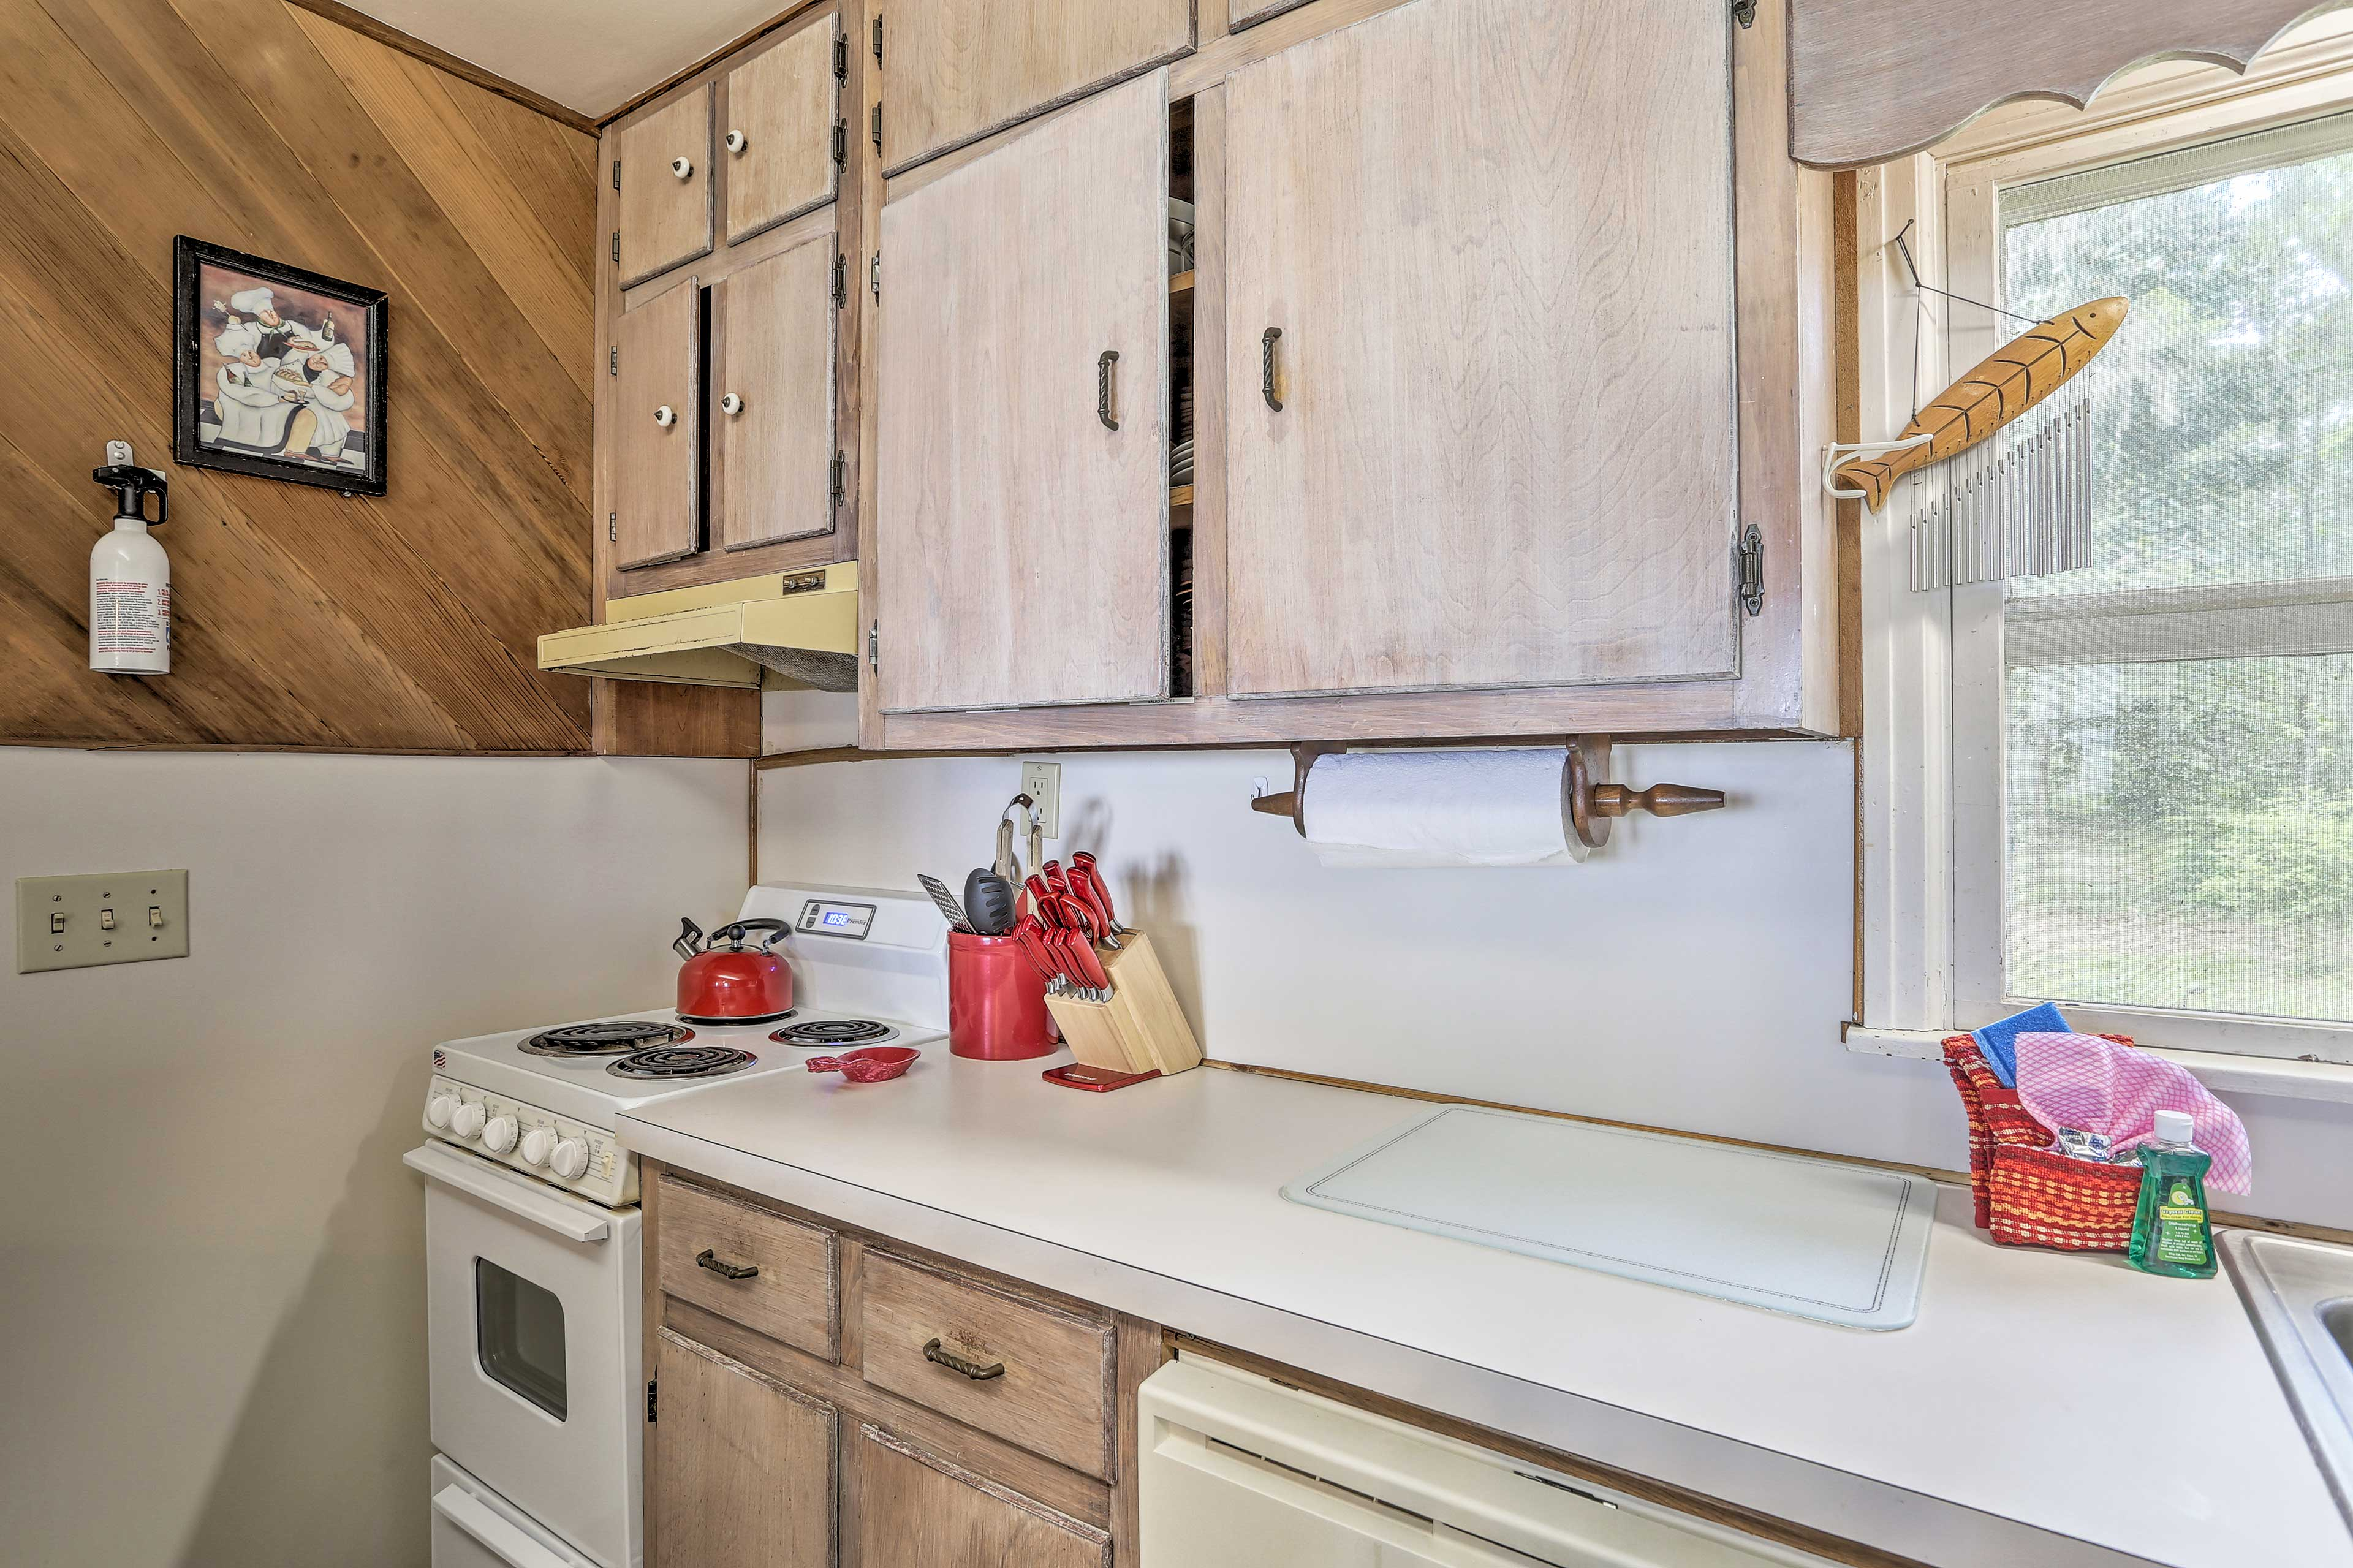 Prepare home cooked meals in this fully equipped kitchen.